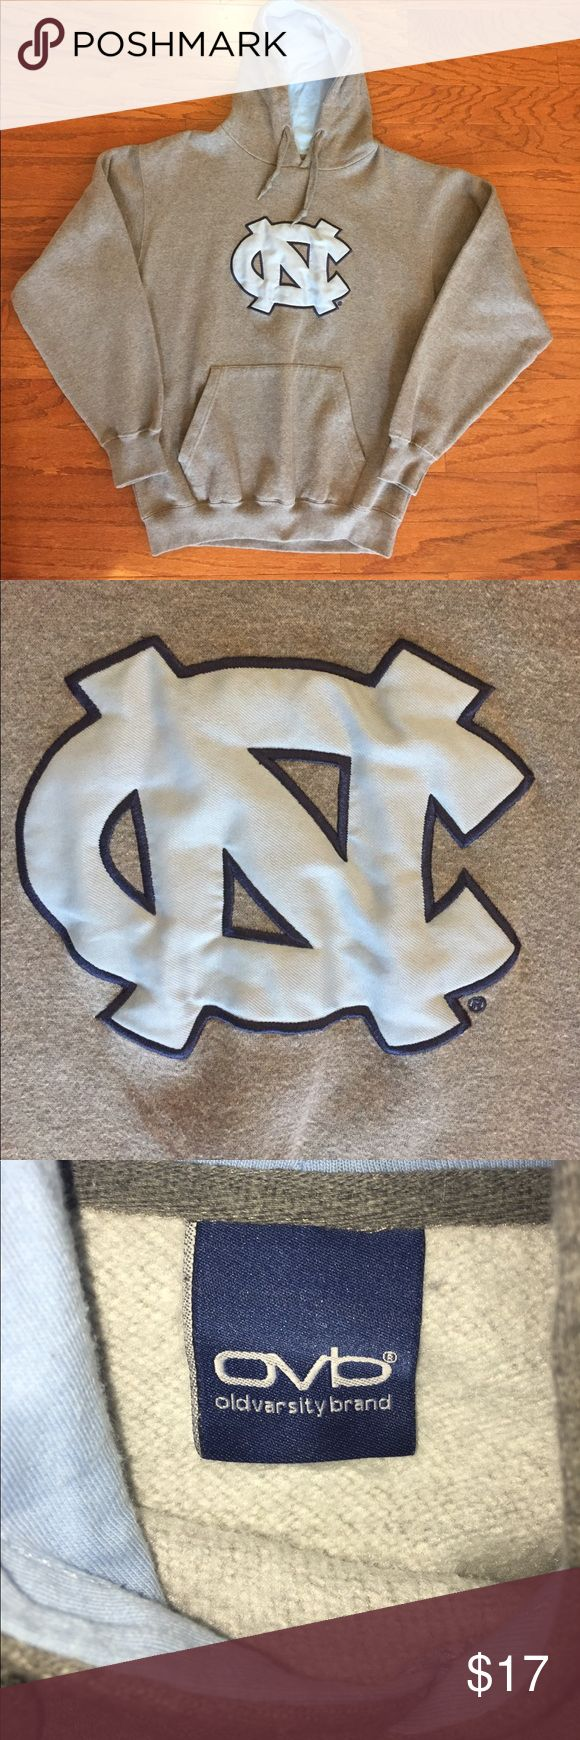 "North Carolina Tarheels Old Varsity Brand Hoodie Good condition, some normal wear, size tag missing and very slight fabric peeling otherwise in very good condition, heather gray with a Carolina blue patch sewn on center of hoodie, 100% cotton material, men's size large, measures about 23"" pit to pit, 27 1/2"" top to bottom and 25"" shoulder to cuff. Old Varsity Brand Shirts Sweatshirts & Hoodies"